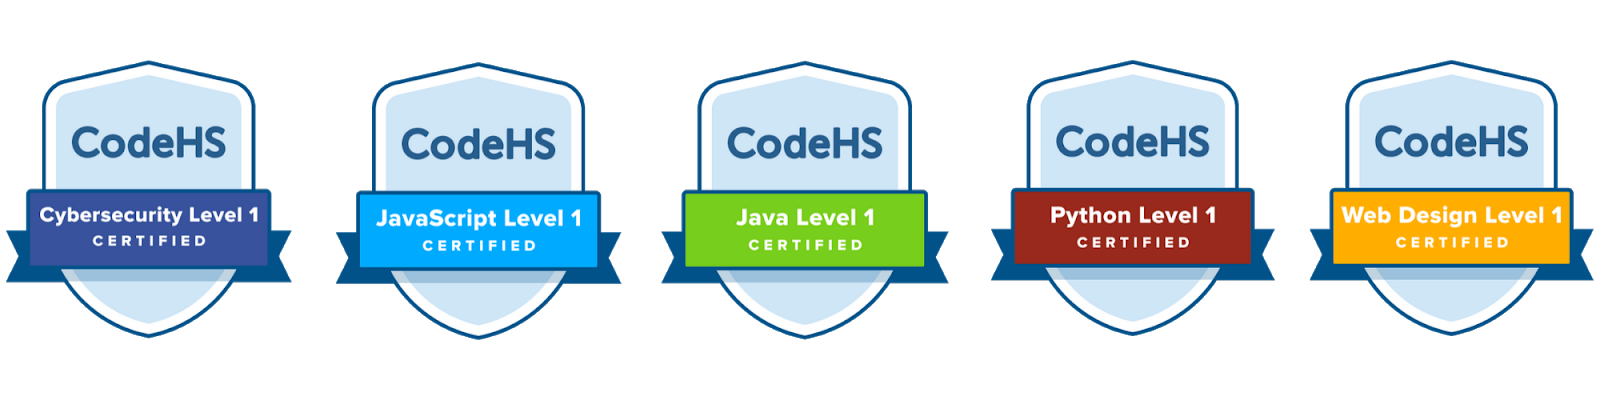 Image showing certification badges for Cybersecurity, Javascript, Java, Python, and Web Design Exams